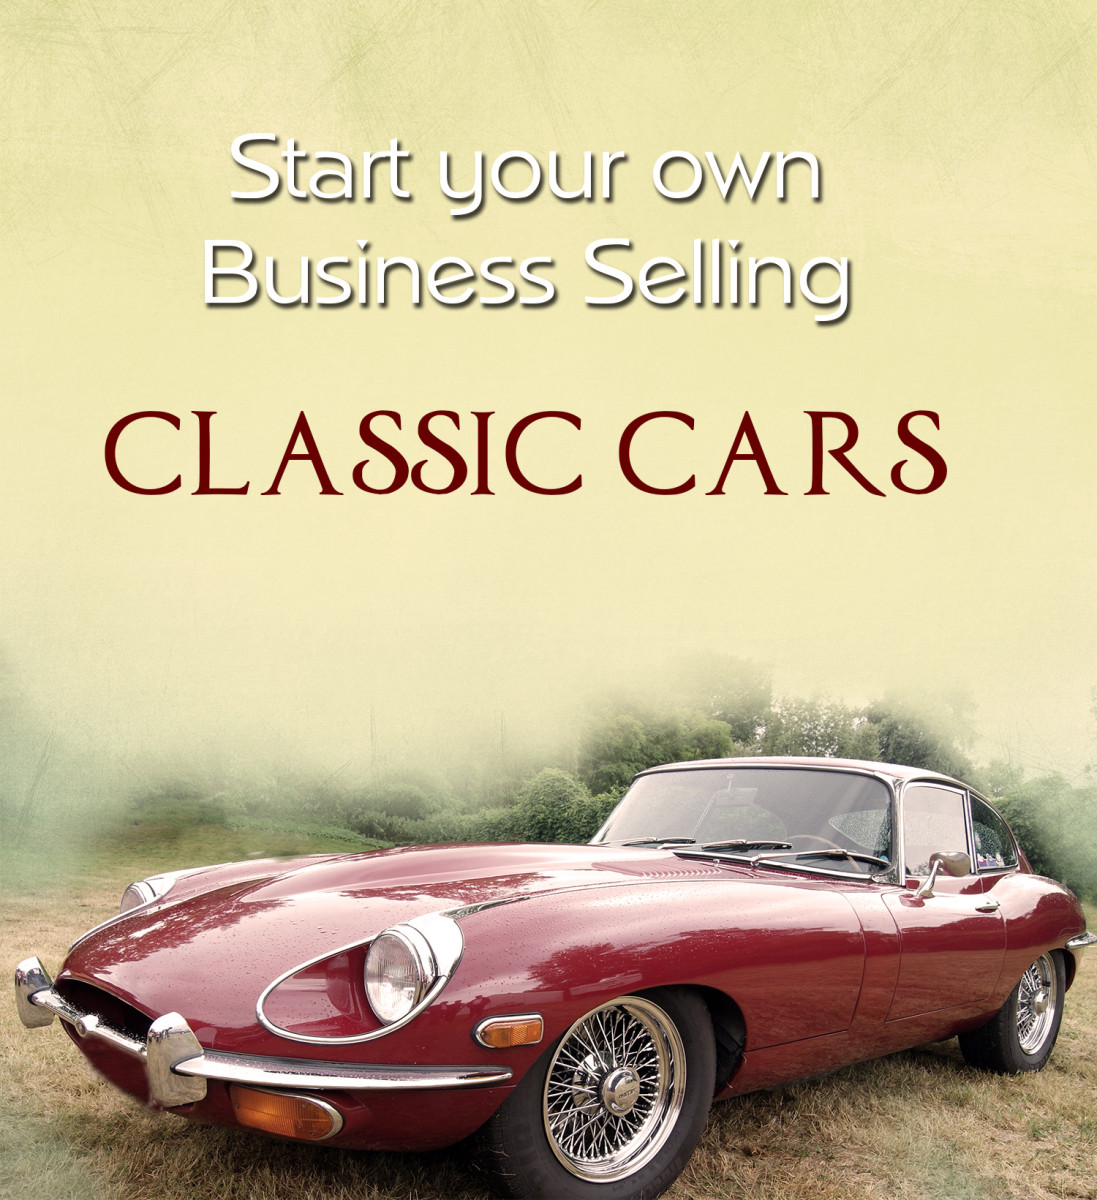 Start Your Own Business Selling Classic Cars | AxleAddict